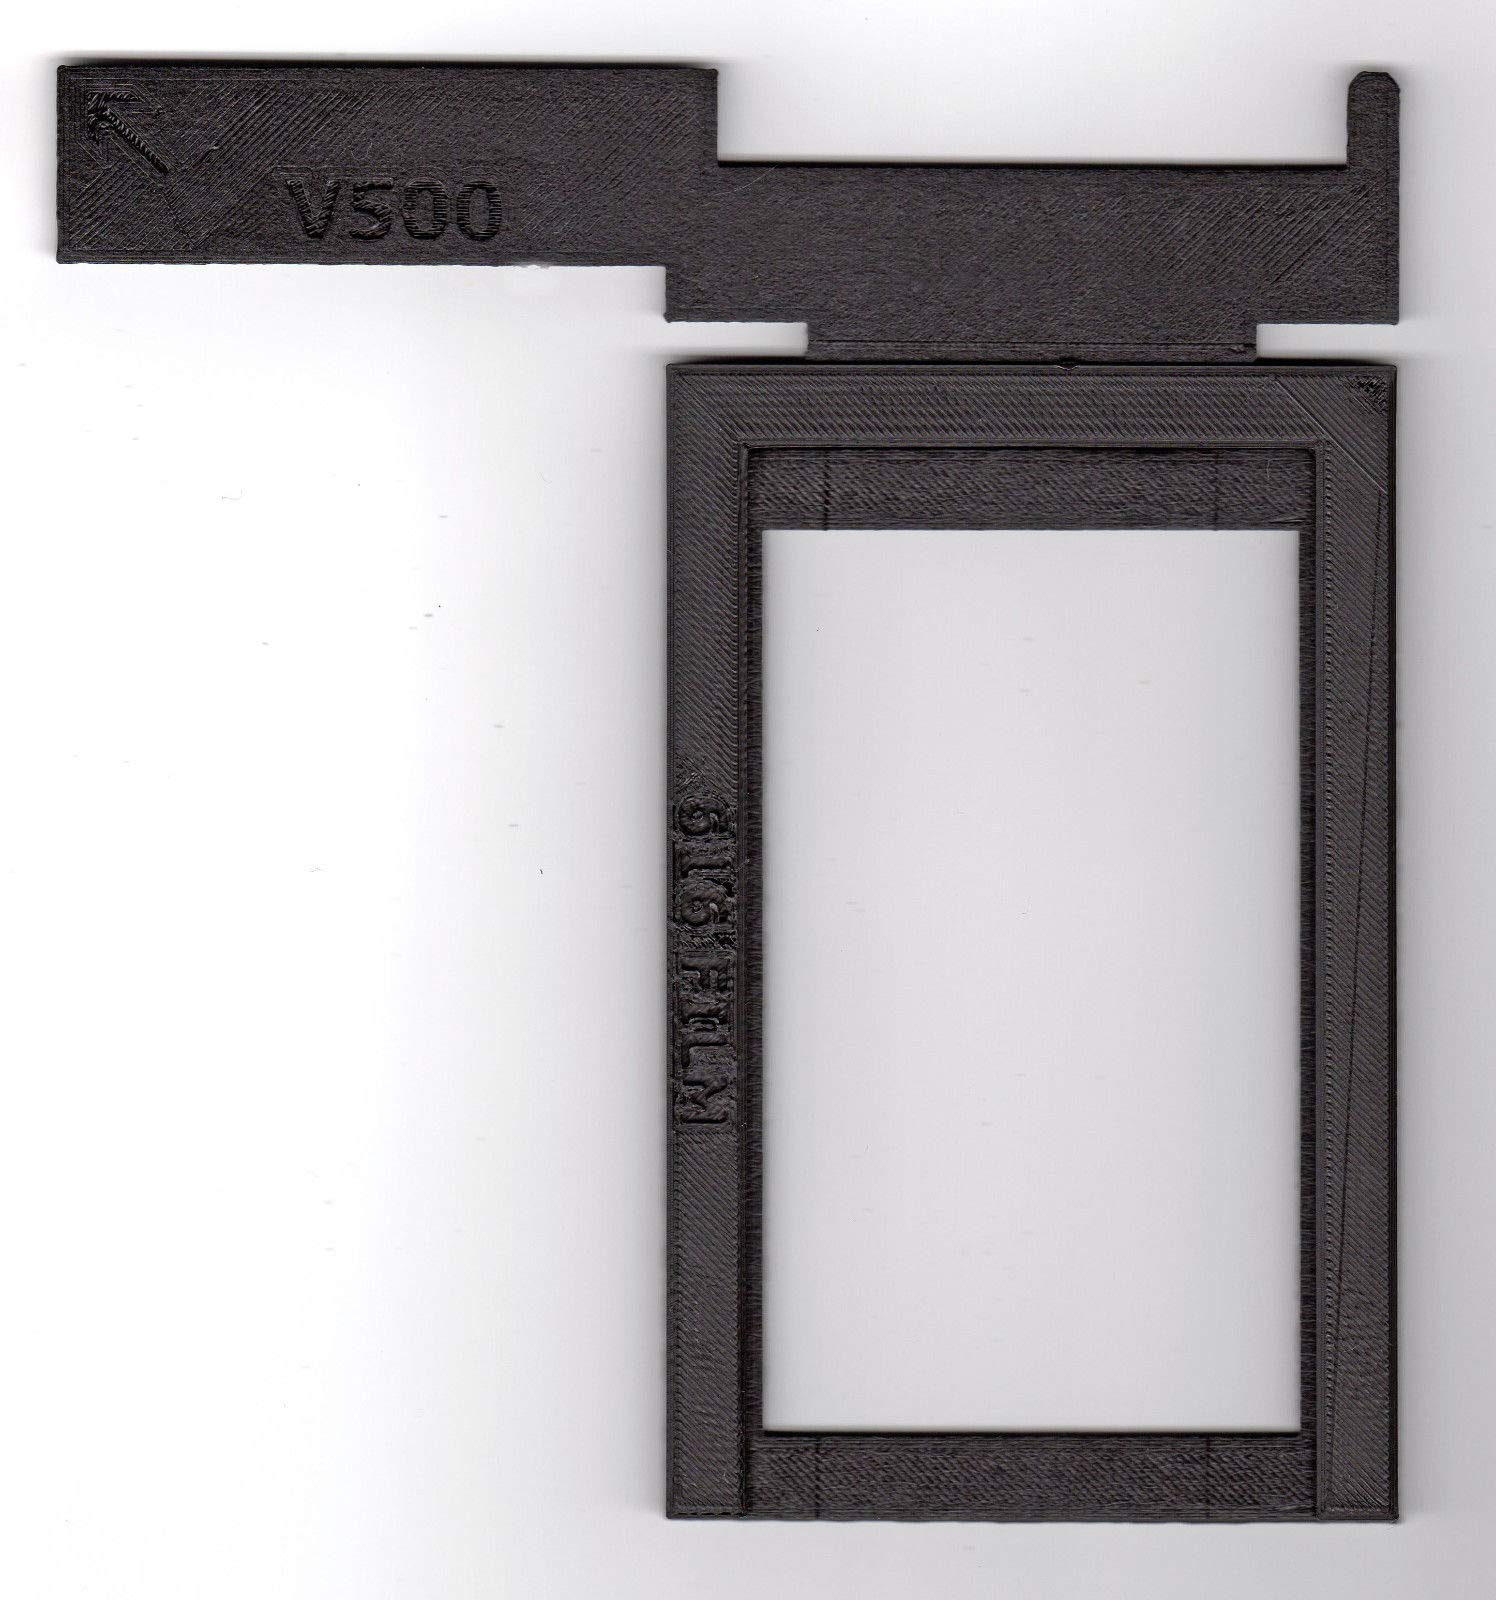 616/116 Film Holder Compatible with V500/4490 Film Scanners by Negative Solutions Film Holders